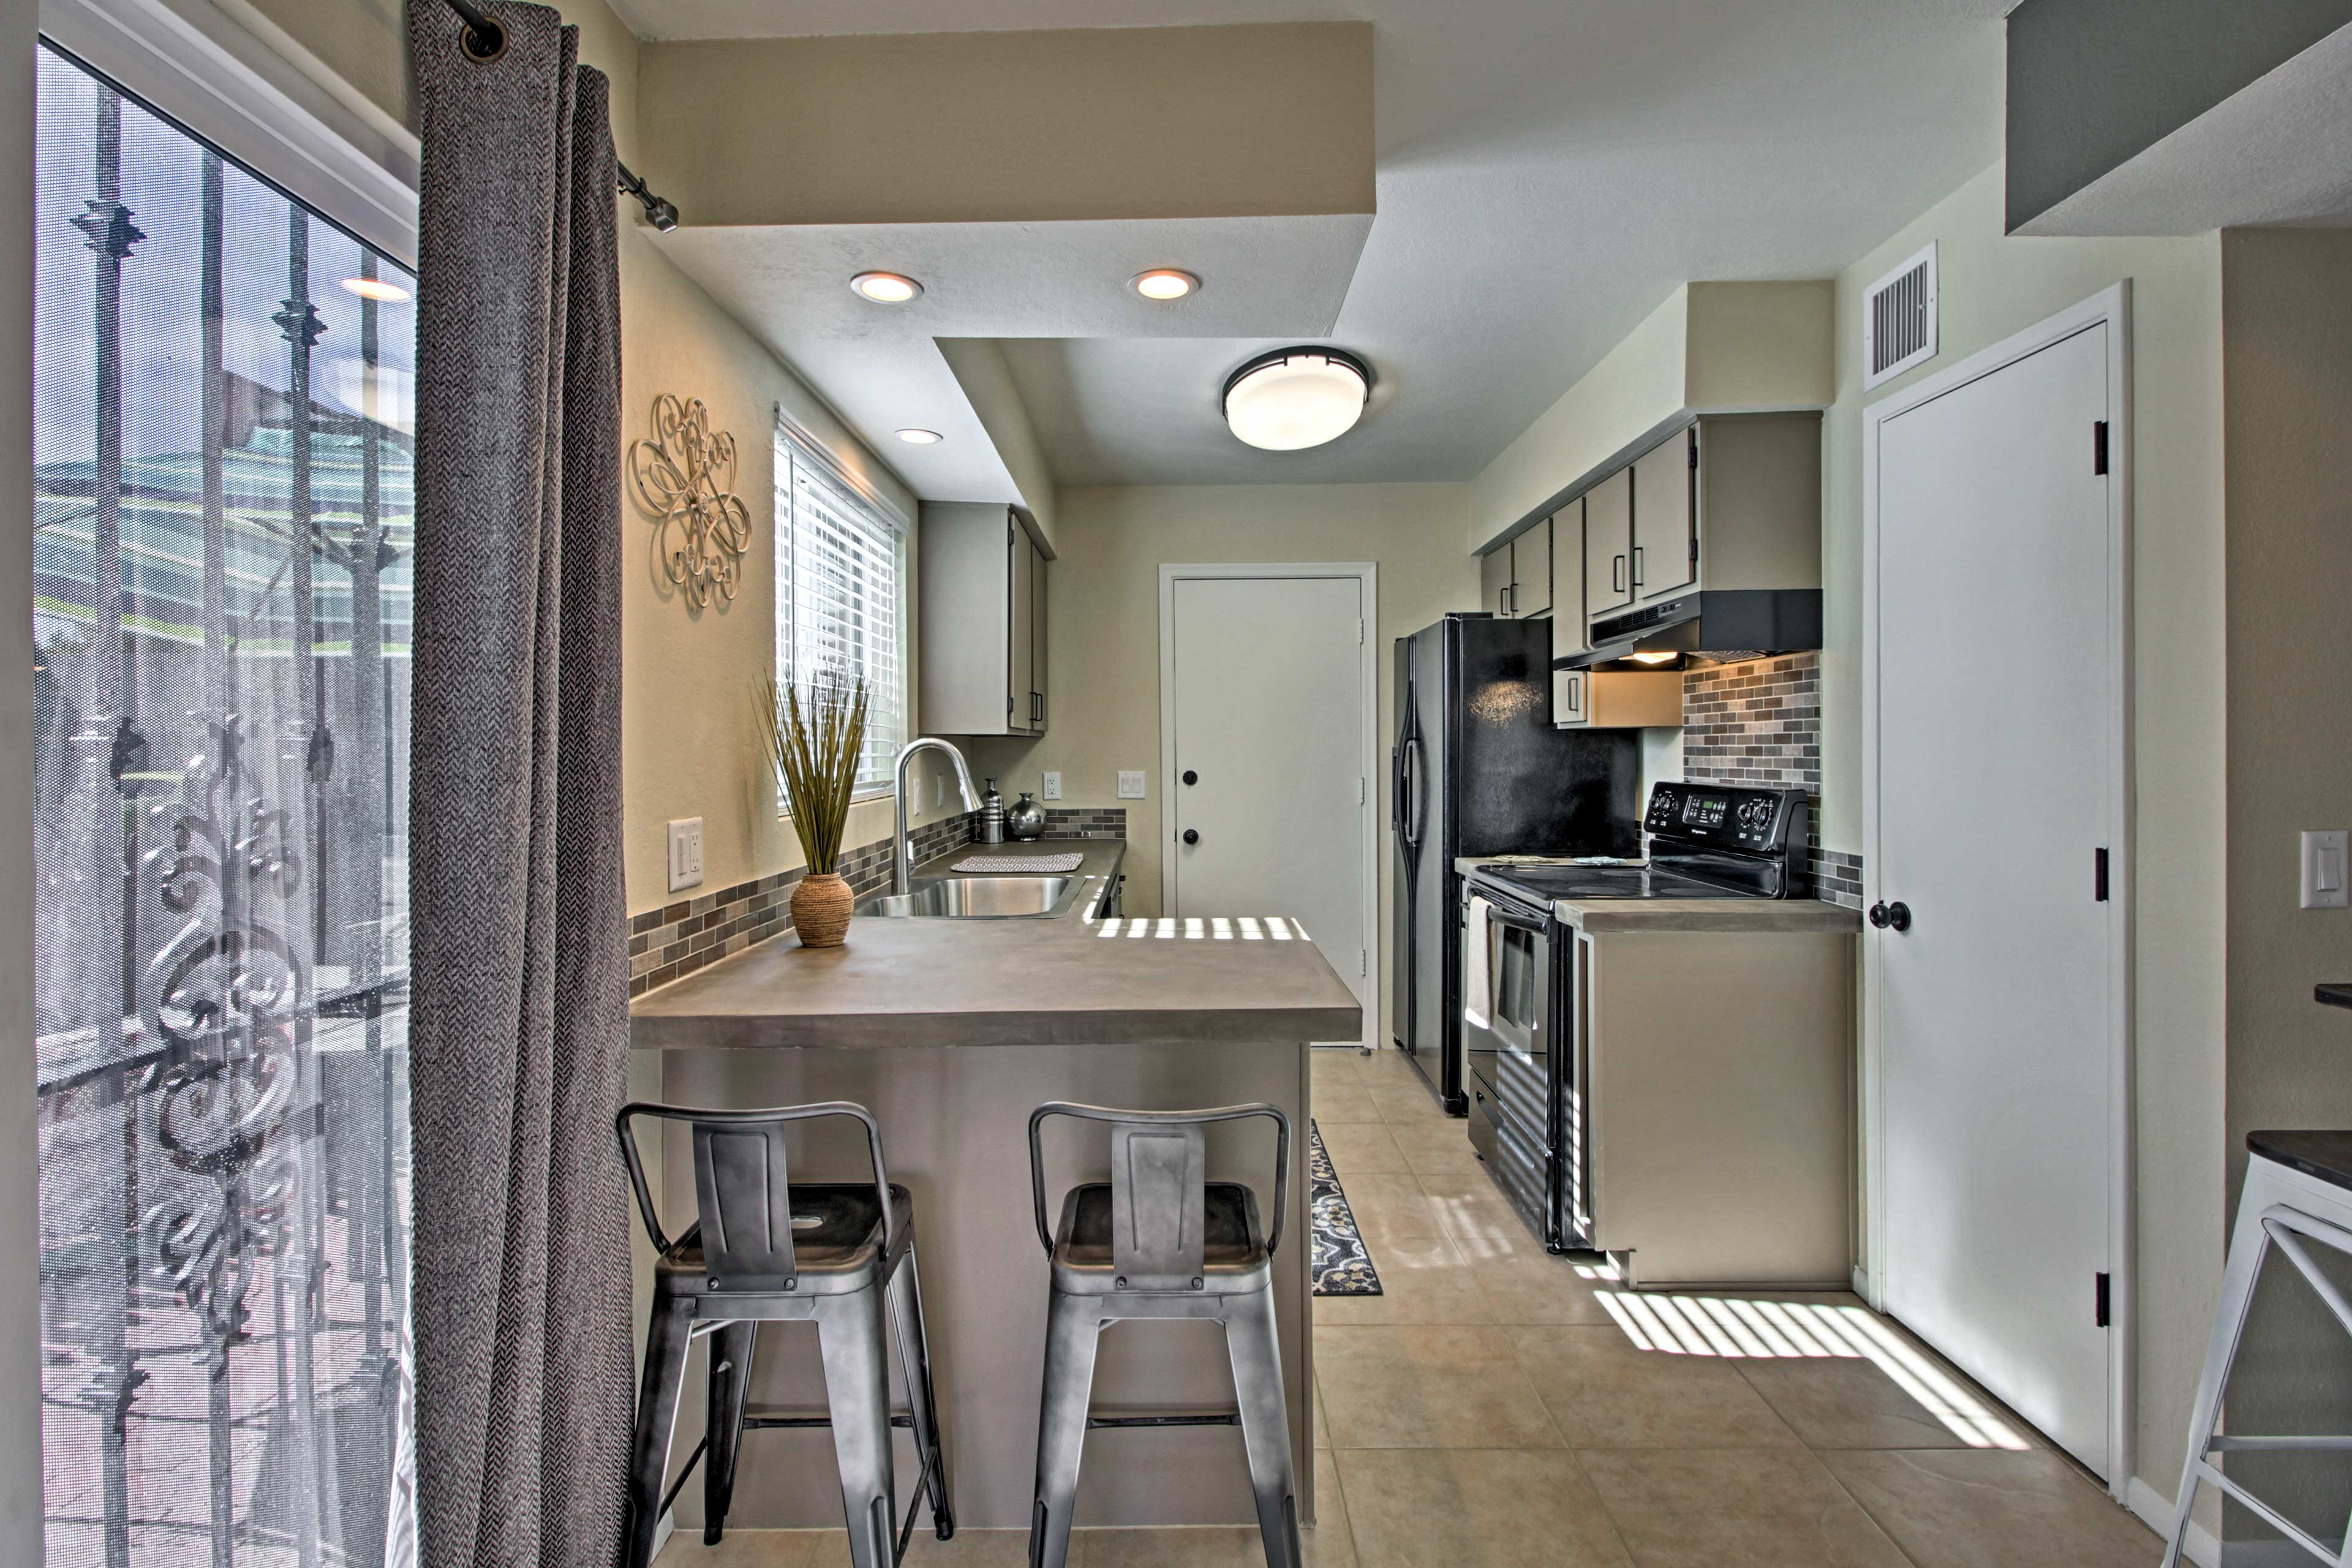 Treat loved ones to a homemade meal at the 2-person breakfast bar.